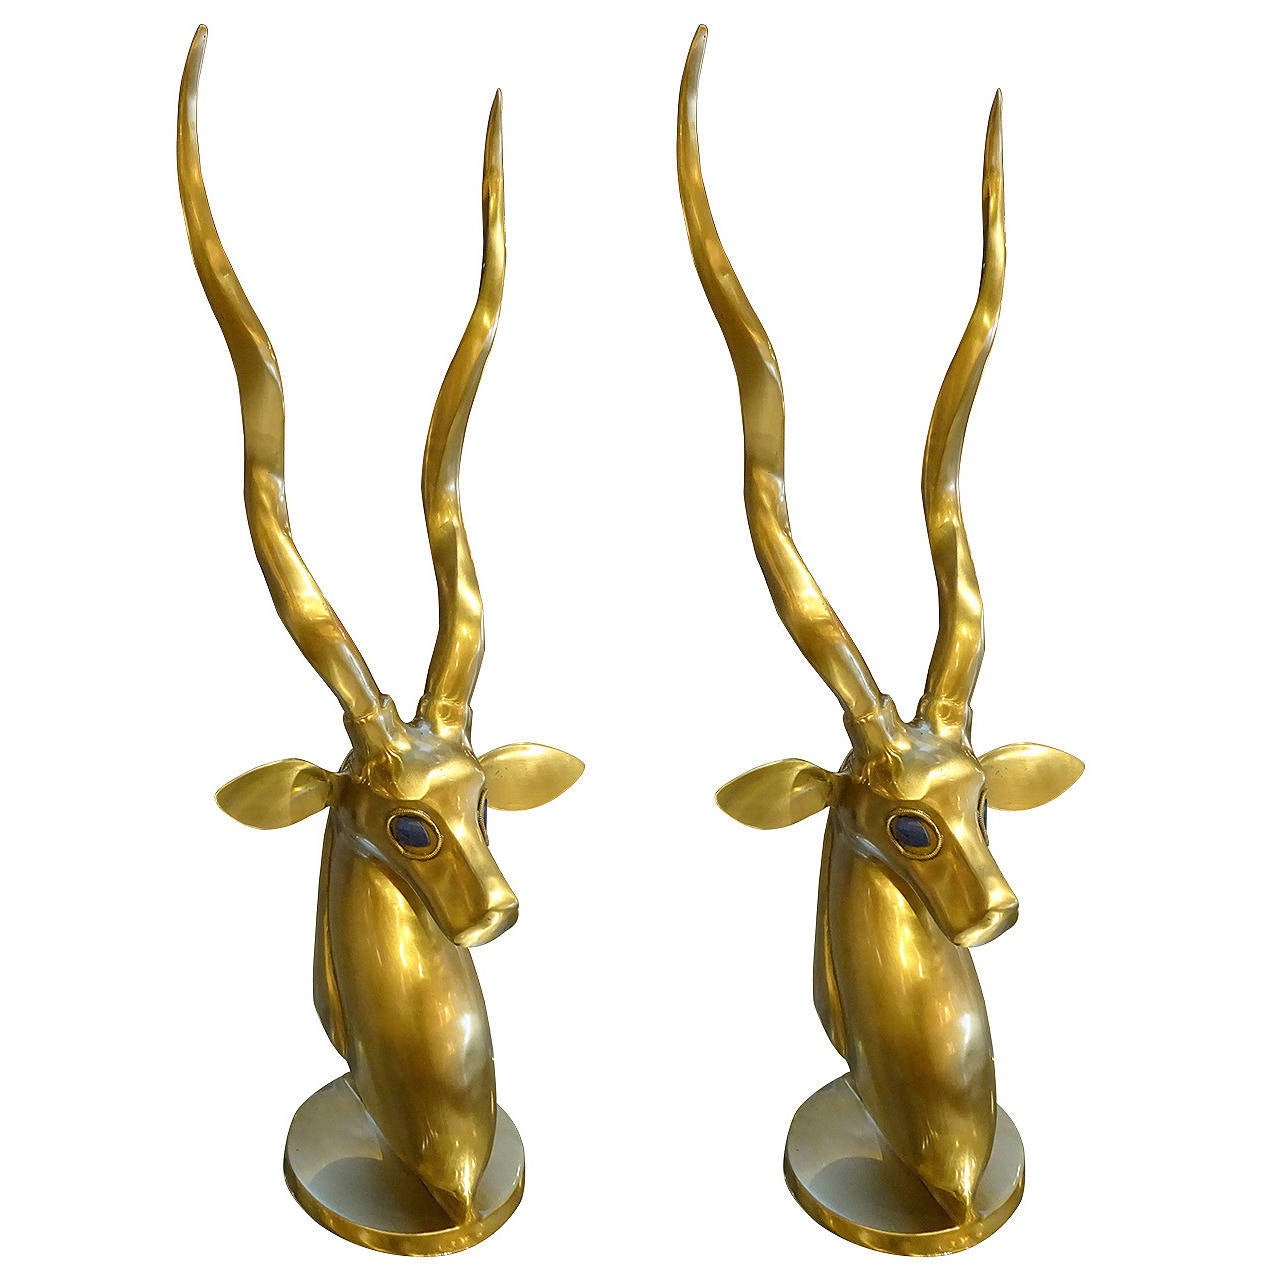 Anthony redmile style brass and lapis deer head sculpture